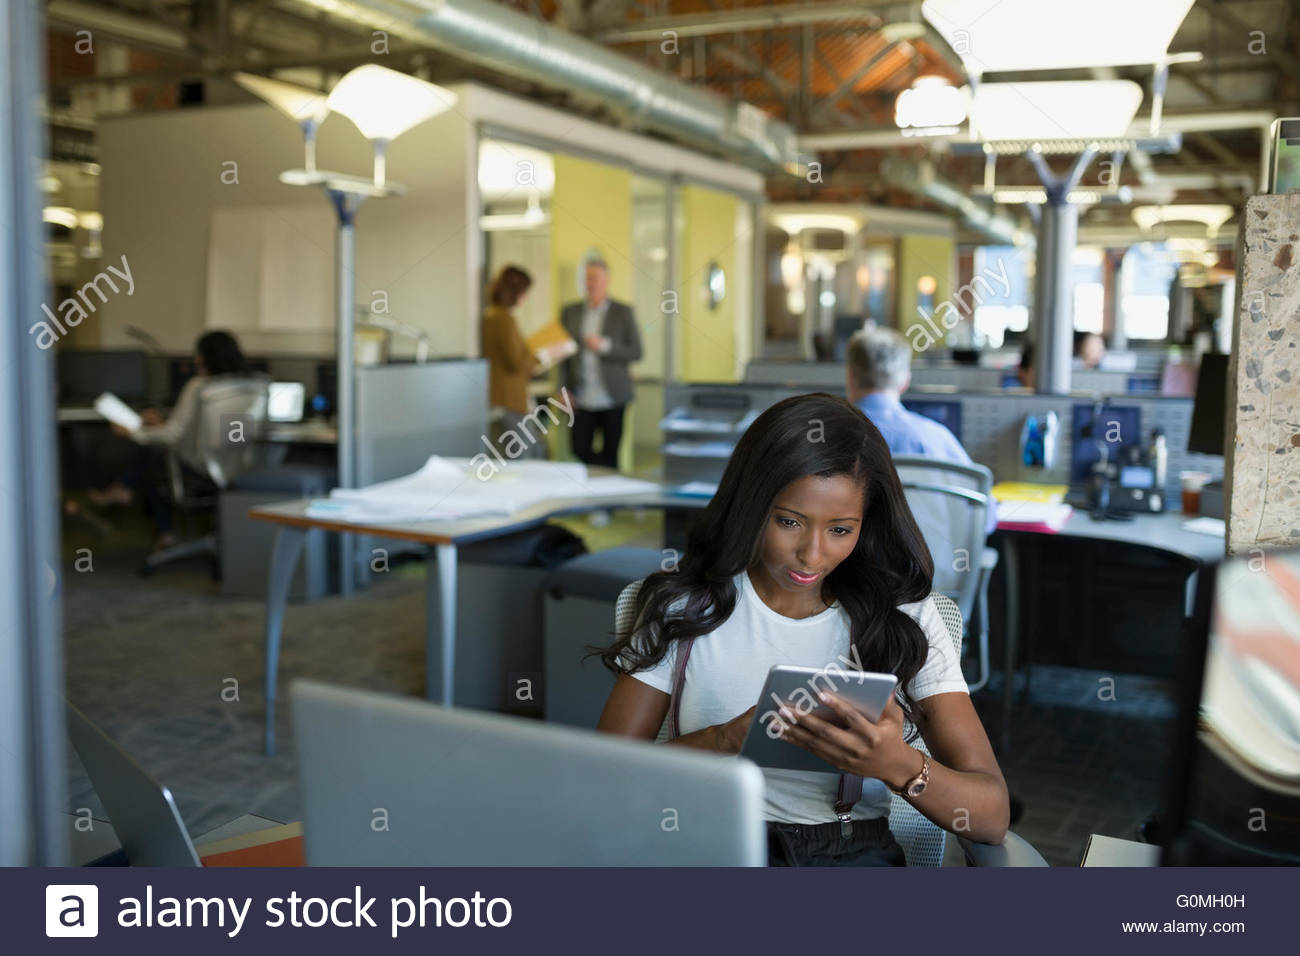 Businesswoman using digital tablet in office - Stock Image